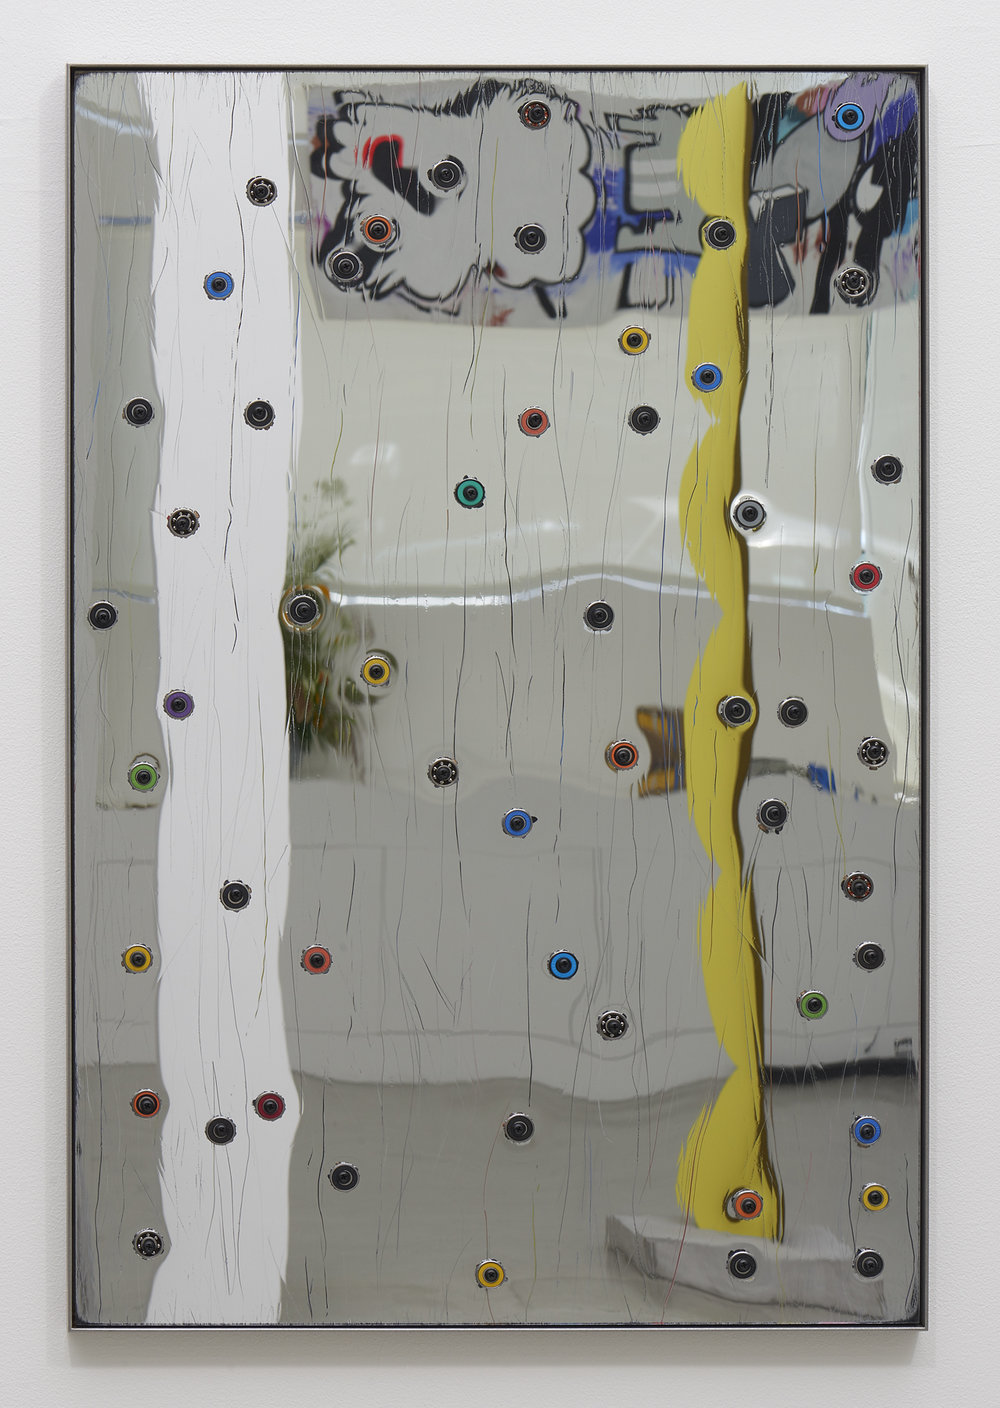 "Davina Semo,  ""USE THE MIRROR,"" SHE TOLD ME, ""THE MIRROR IS A TOOL "", 2018, Acrylic mirror, oriented strand board, assorted ball bearings, hardware, stainless steel, 38 x 25 inches"